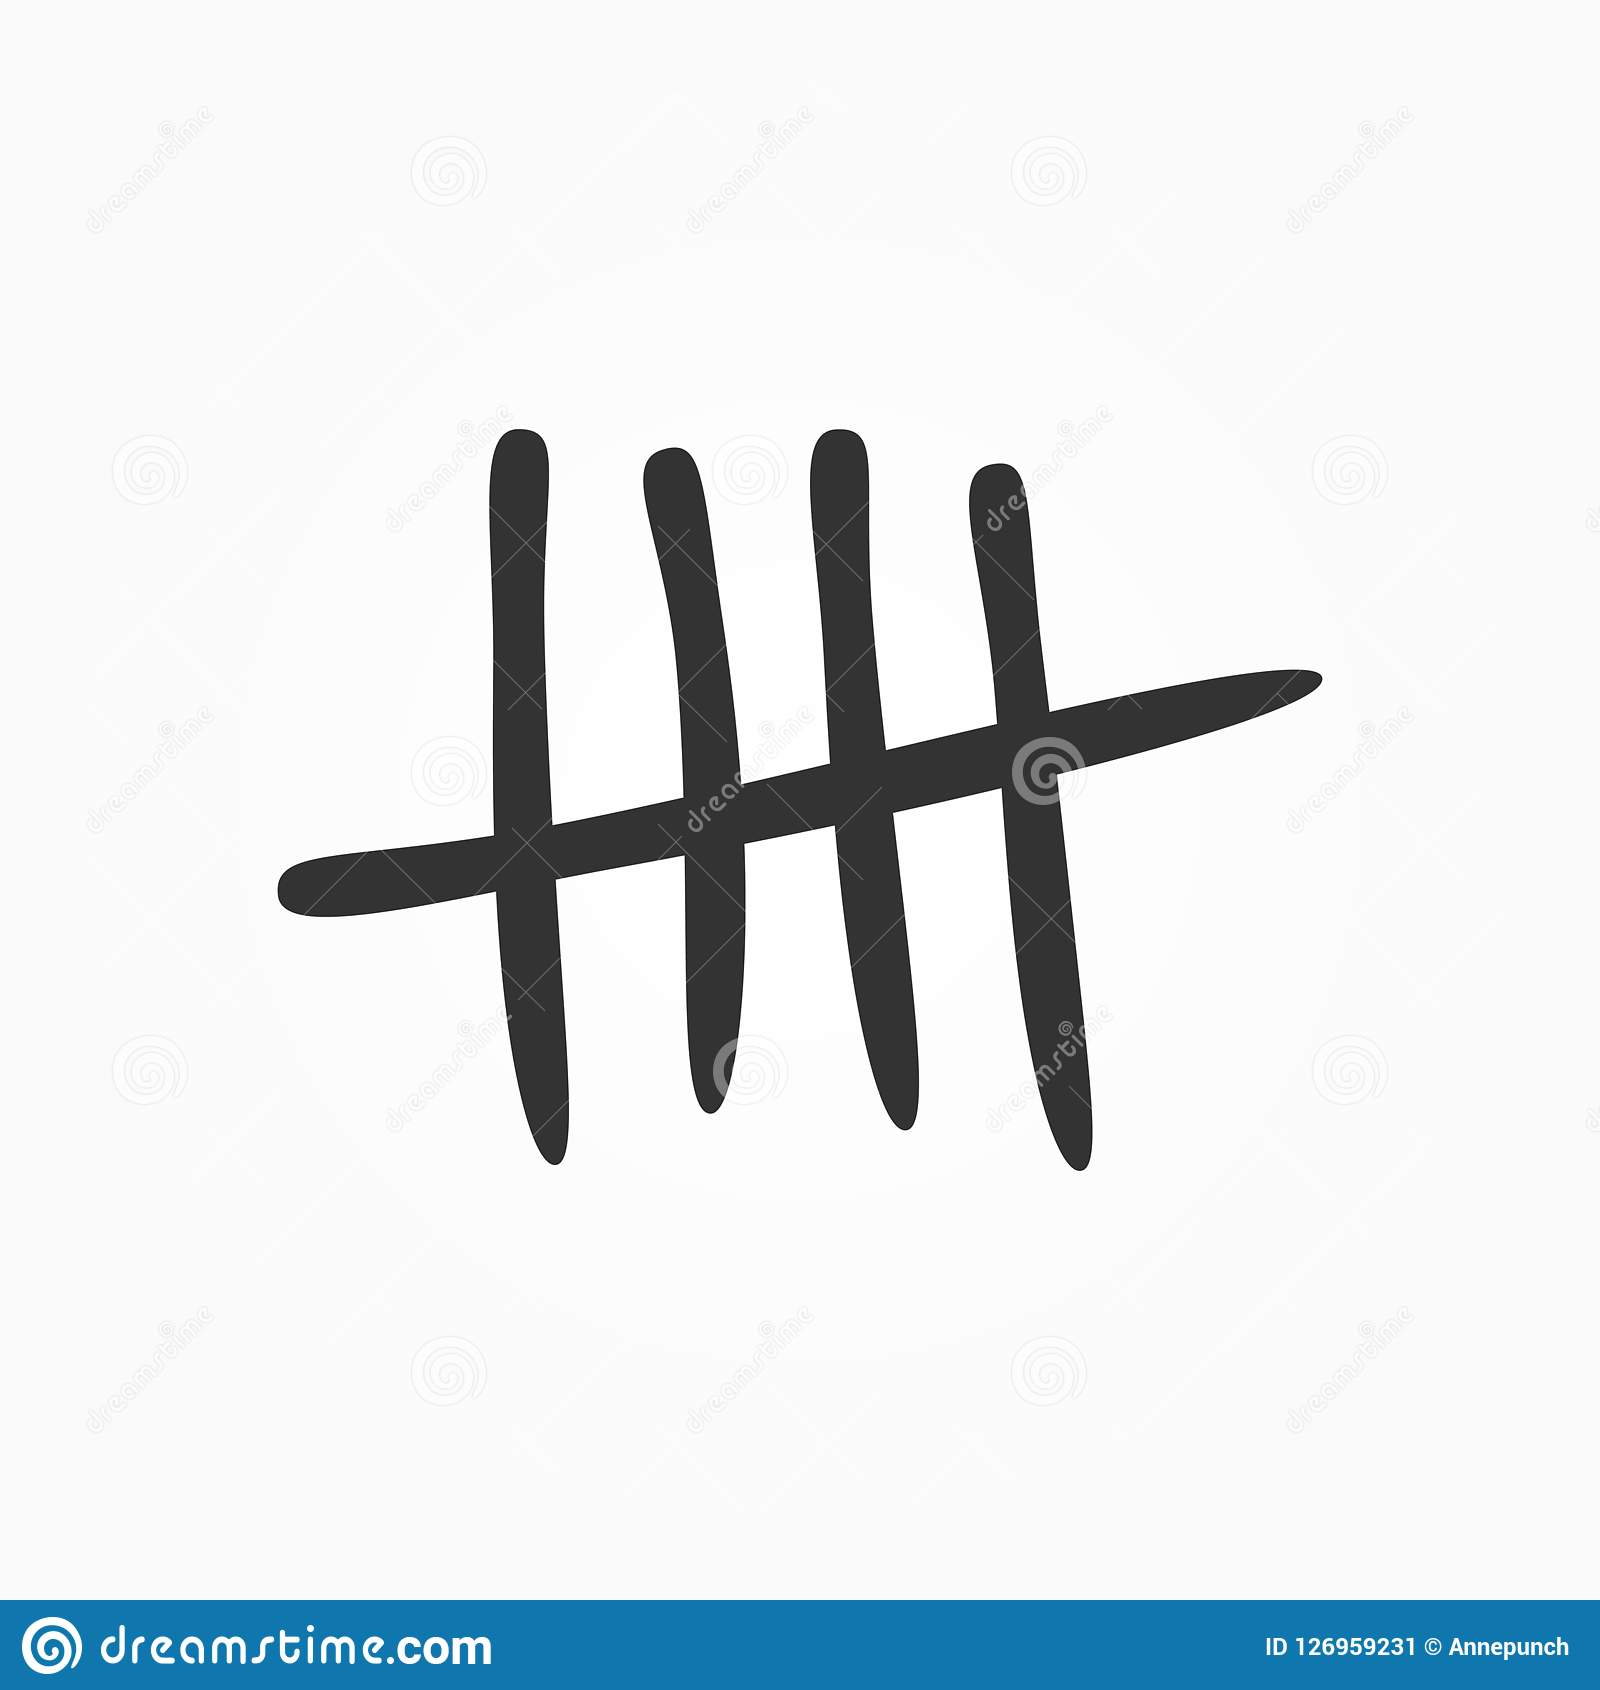 Tally marks drawn by hand. Isolated sketch icon, sign, symbol.